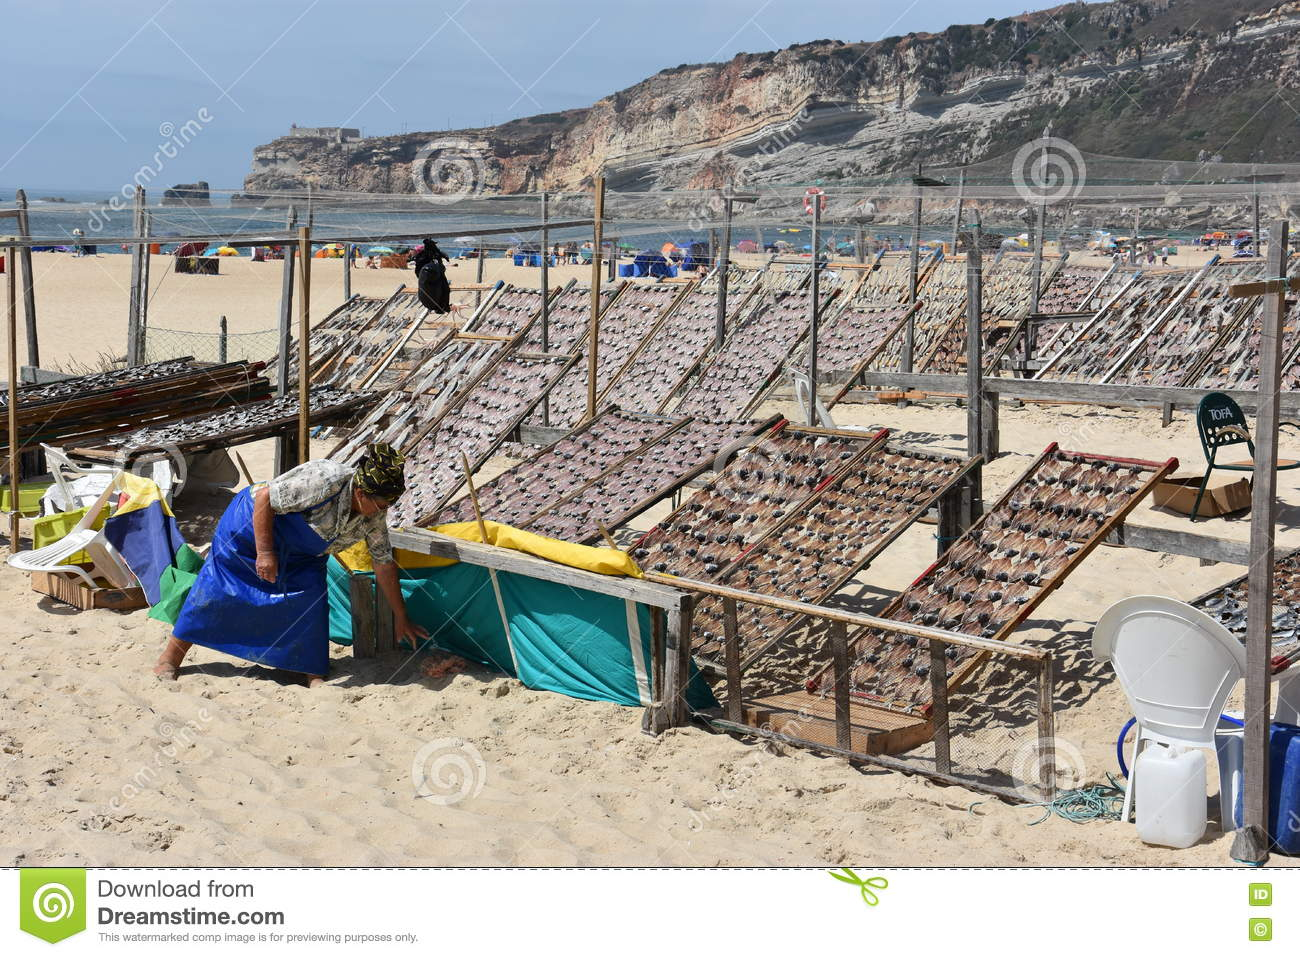 plage au village de p che de nazare au portugal photo stock ditorial image 76717663. Black Bedroom Furniture Sets. Home Design Ideas